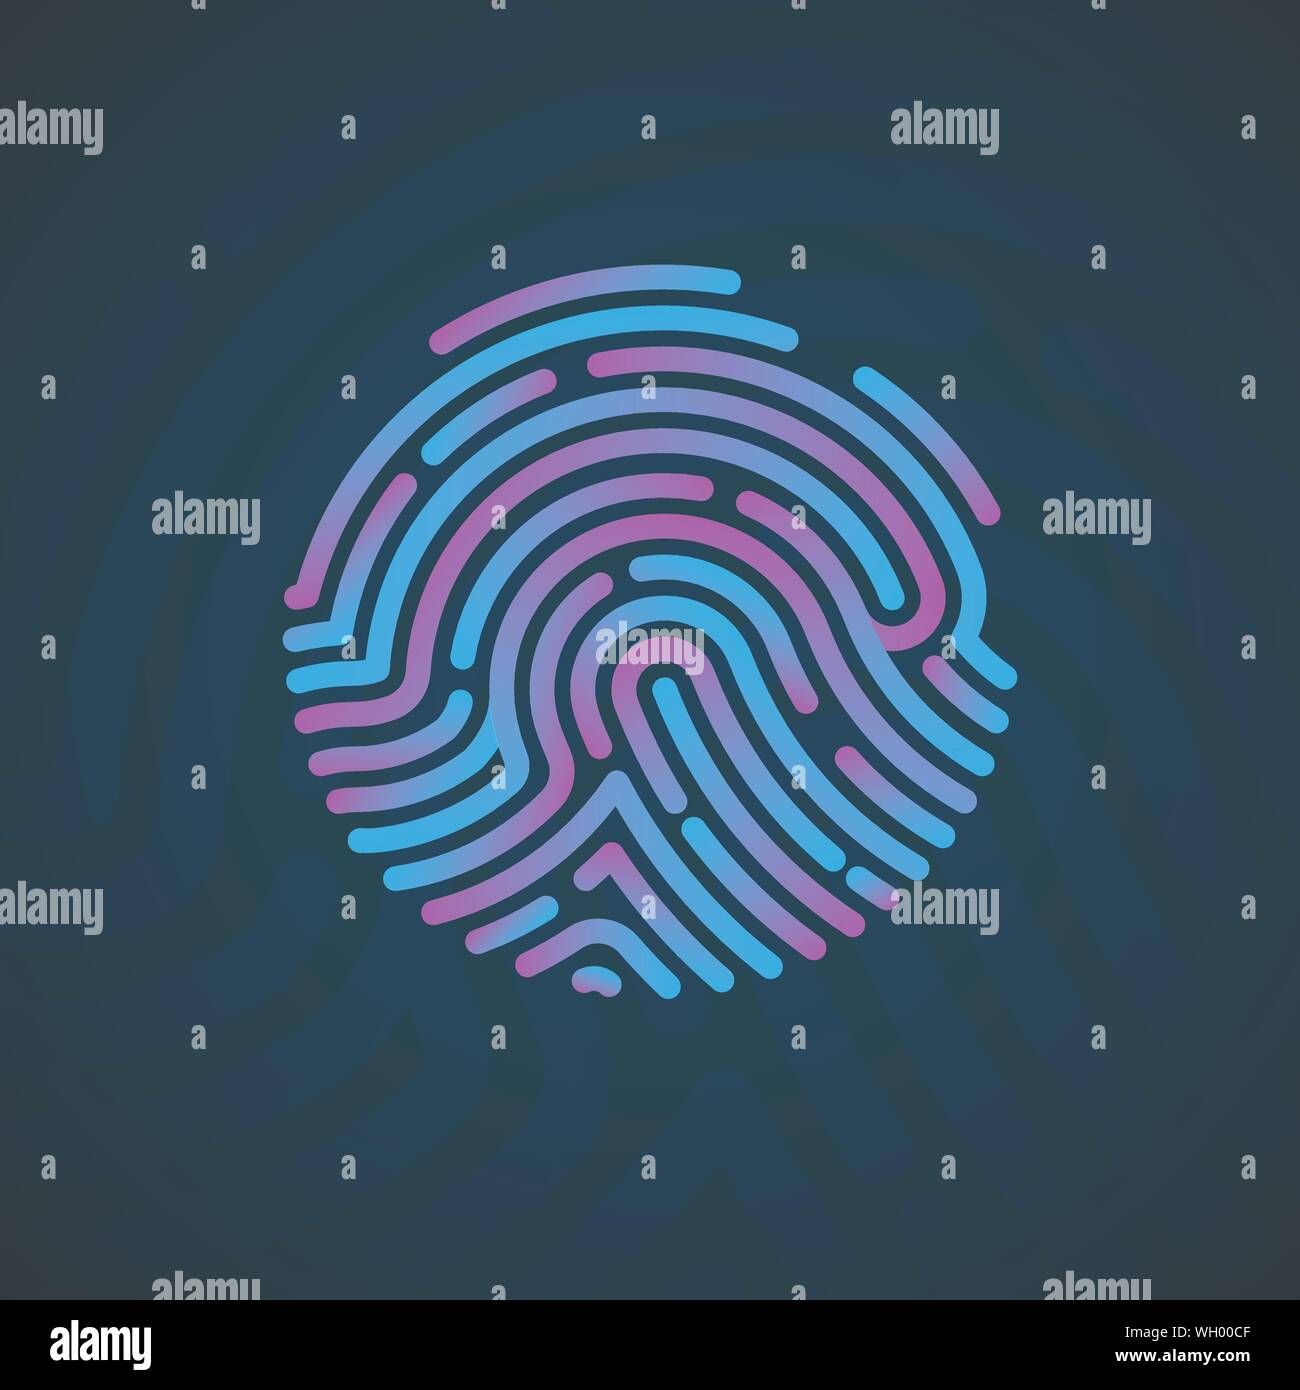 Cyber Security Finger Print Scanned. Fingerprint Scanning Identification System. Biometric Authorization and Security Concept. Vector illustration Stock Vector